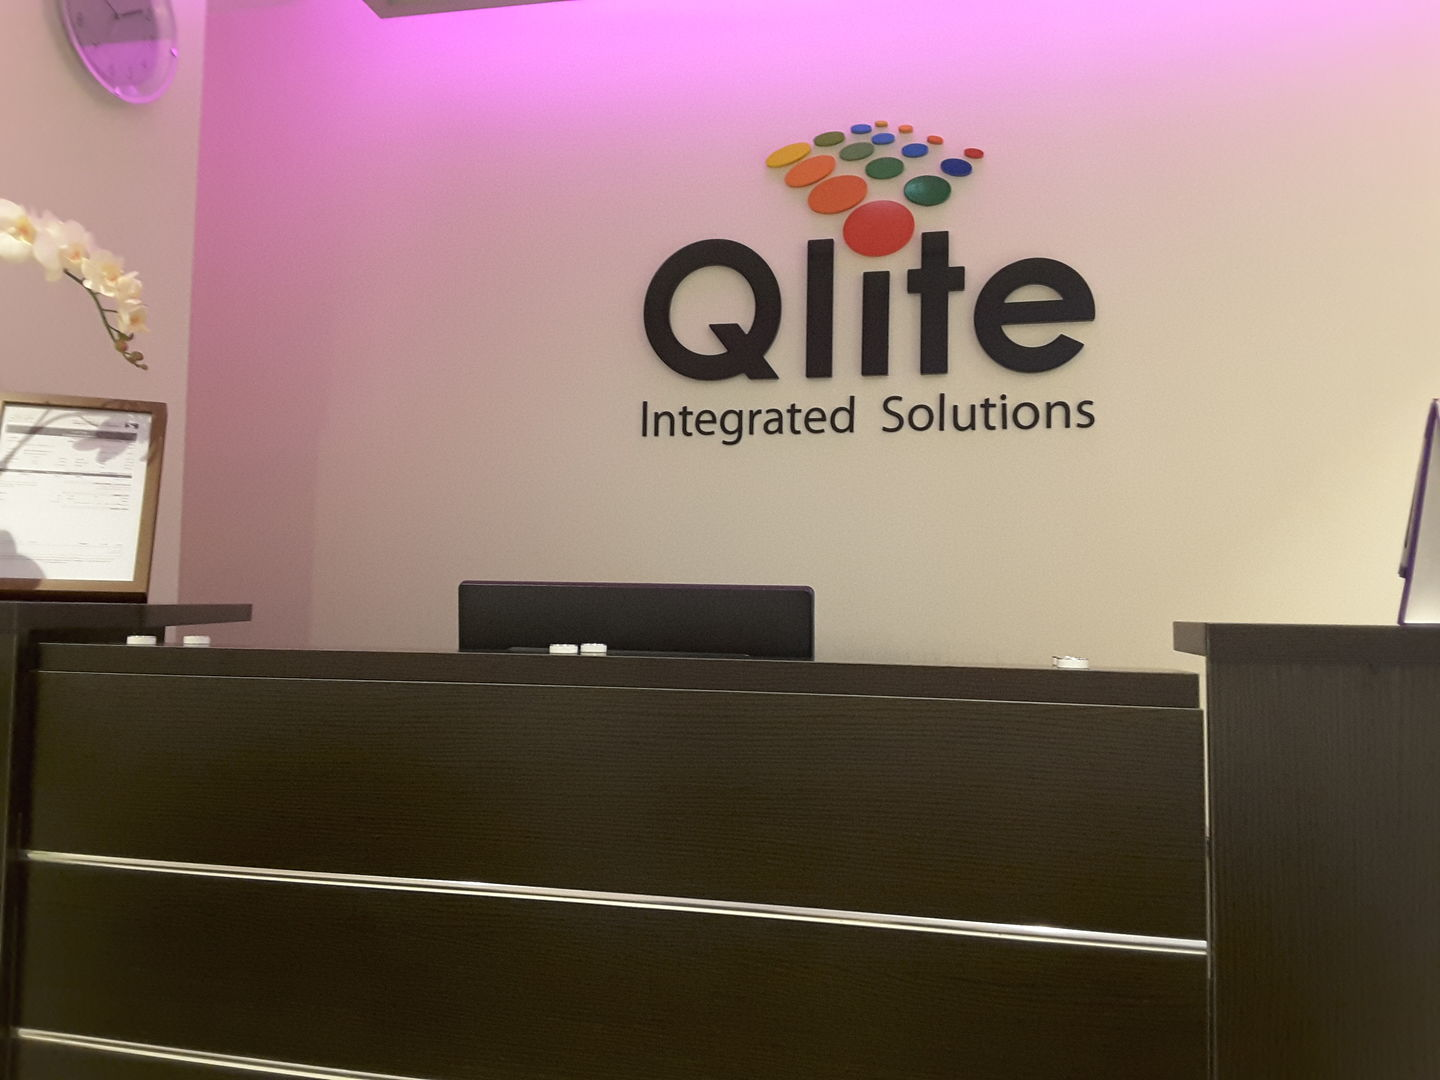 HiDubai-business-qlite-integrated-solutions-b2b-services-business-consultation-services-business-bay-dubai-2